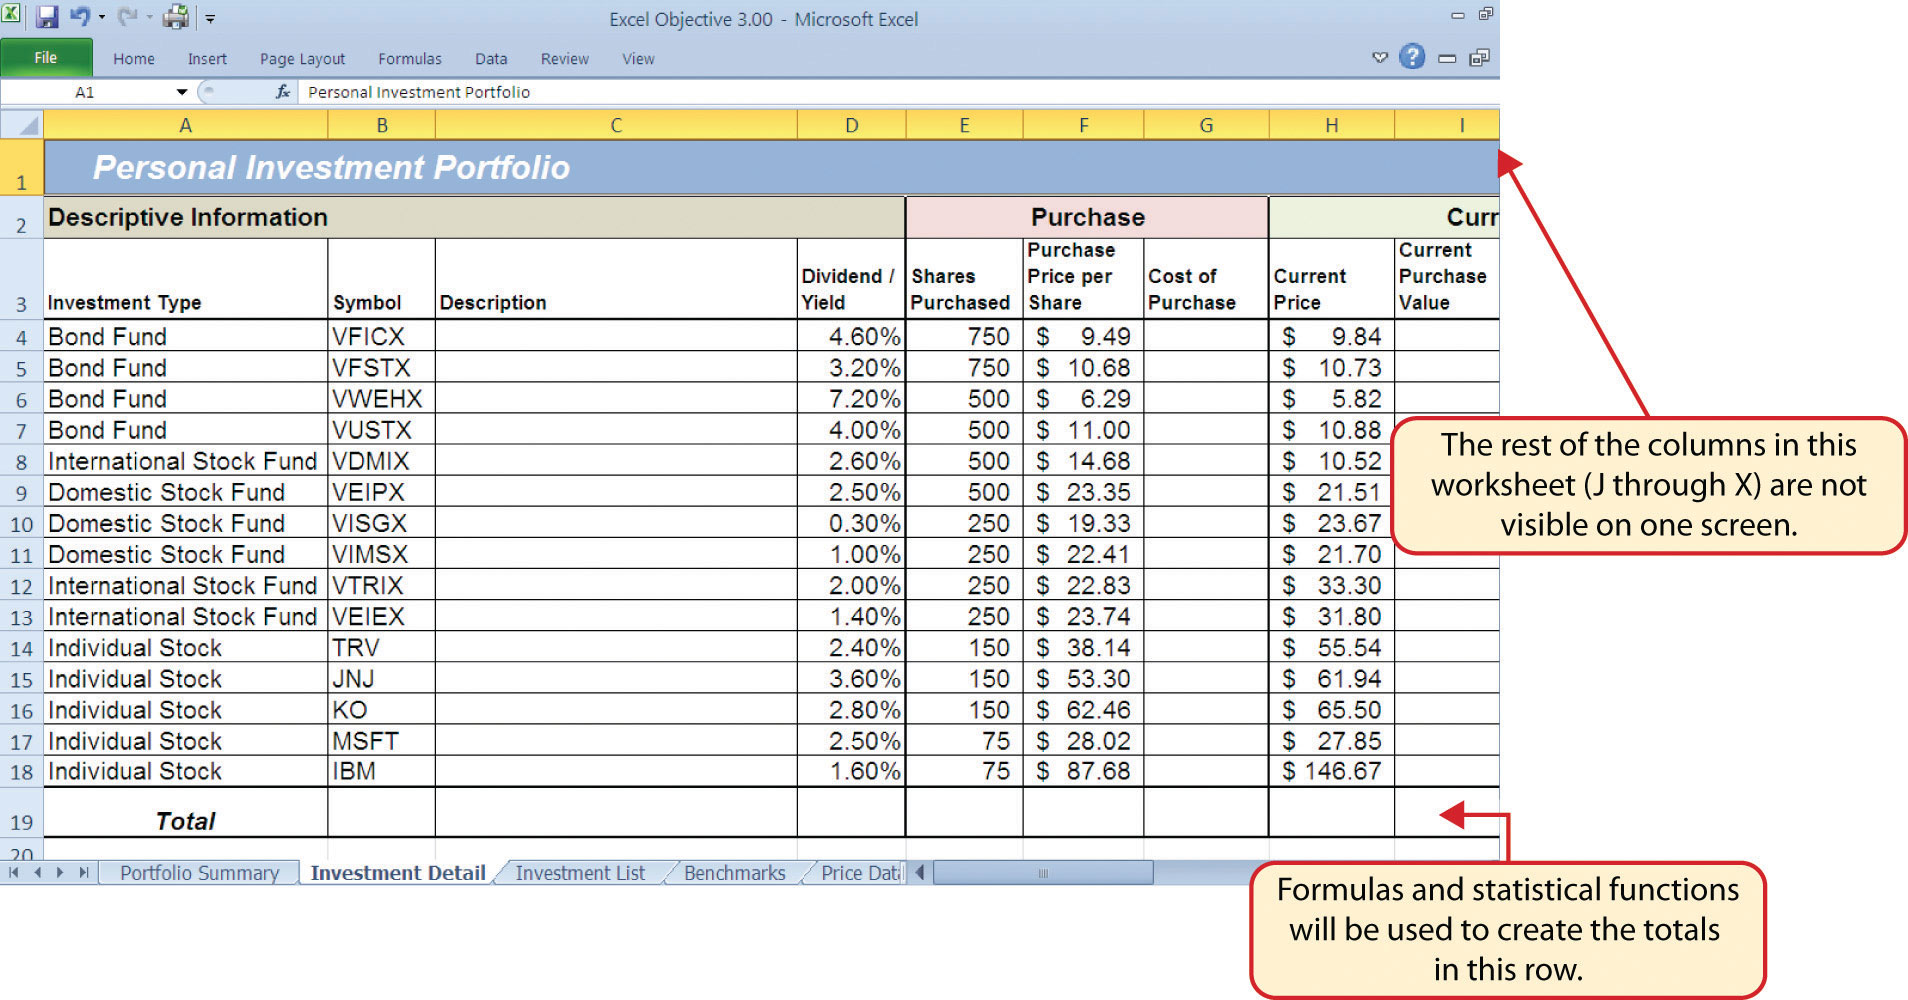 How To Freeze Columns And Rows In Excel At The Same Time